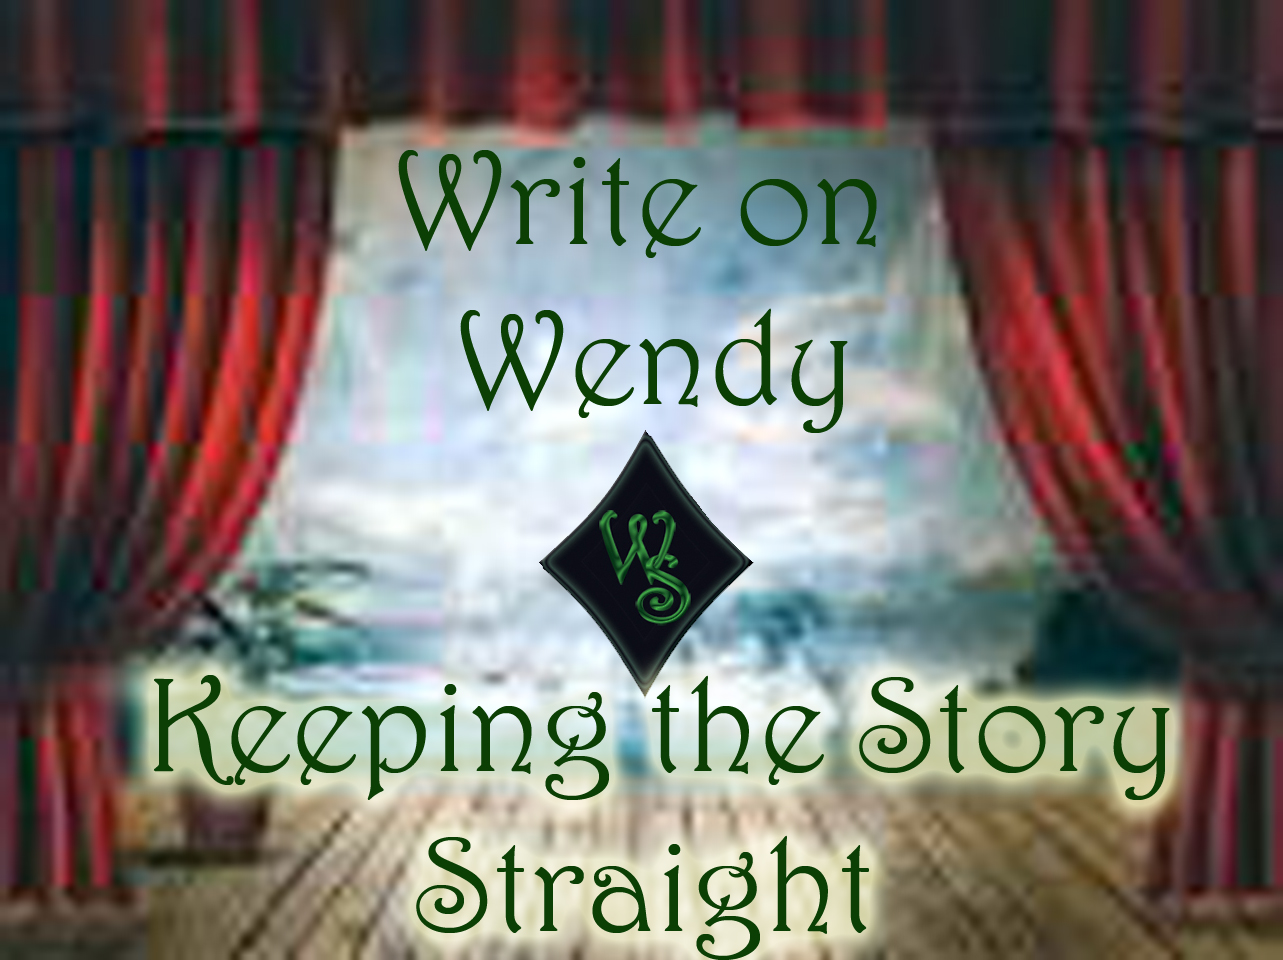 Writing Tips video by Wendy Strain